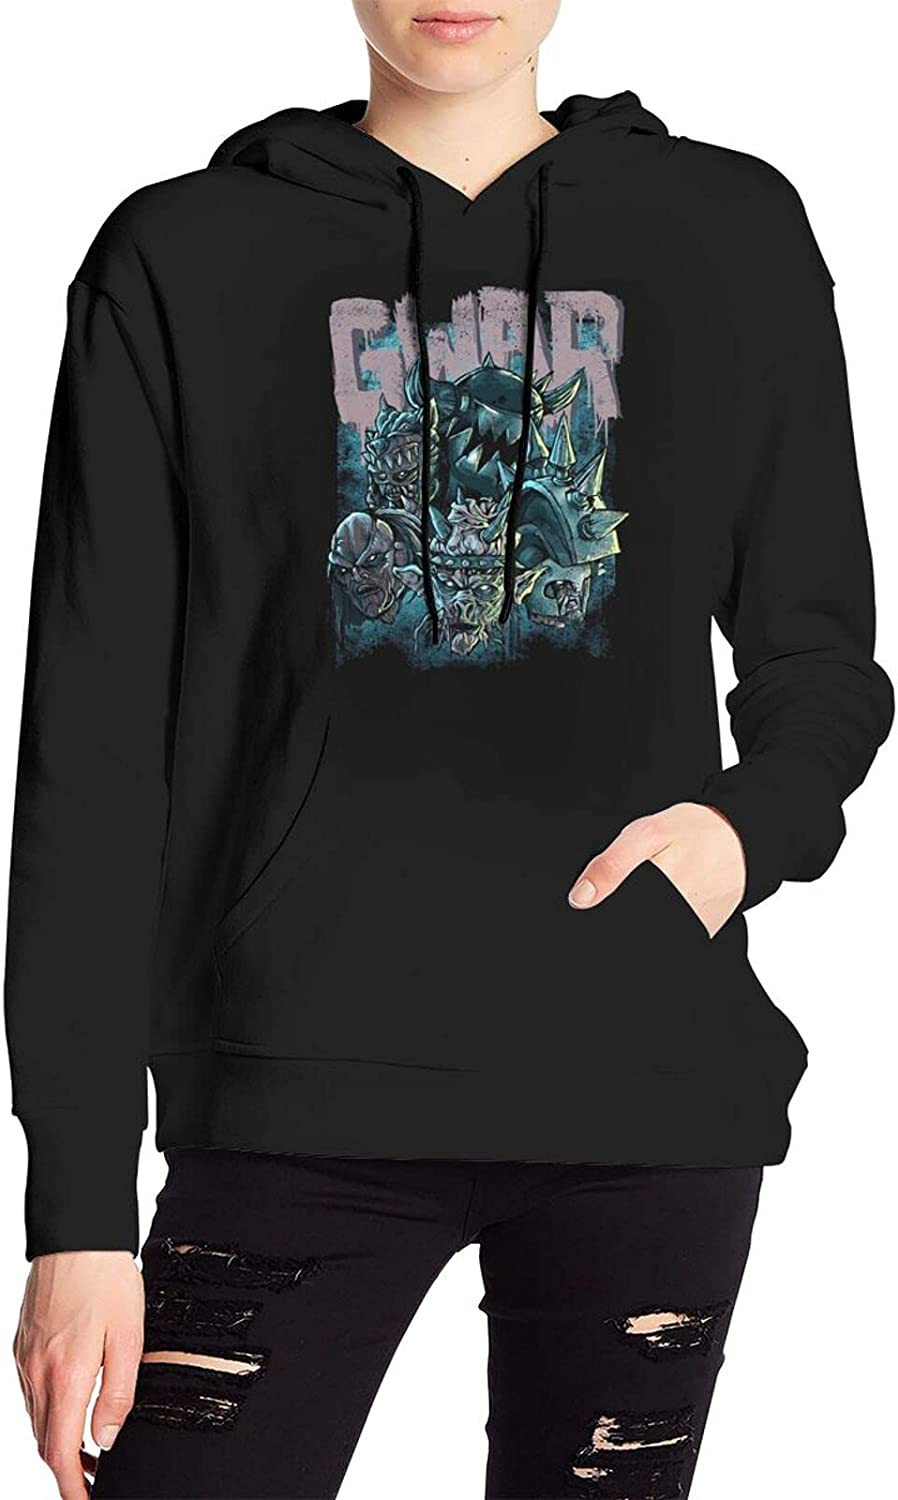 Gwar Band Sweater Graphic Hoodies With Pocket For Men'S Womens